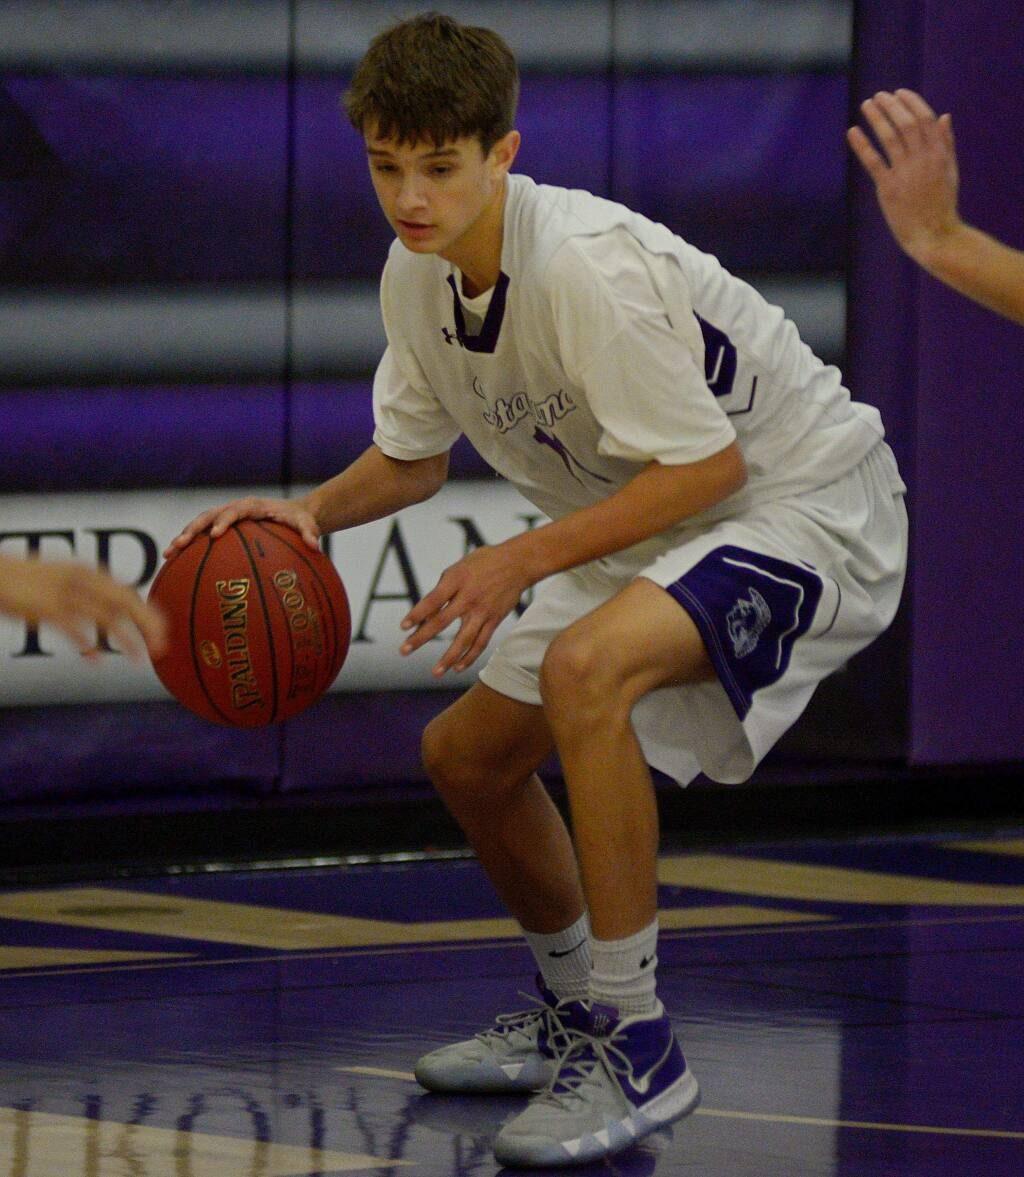 SUMNER FOWLER/FOR THE ARGUS-COURIERPetaluma's Ryan Giacomini made a miracle 4-point play to send the game into overtime and then hit another 3-point shot to lead the Trojan JVs to a 66-62 win over Casa Grande in the Wayne Douglas Junior Varsity Tournament.